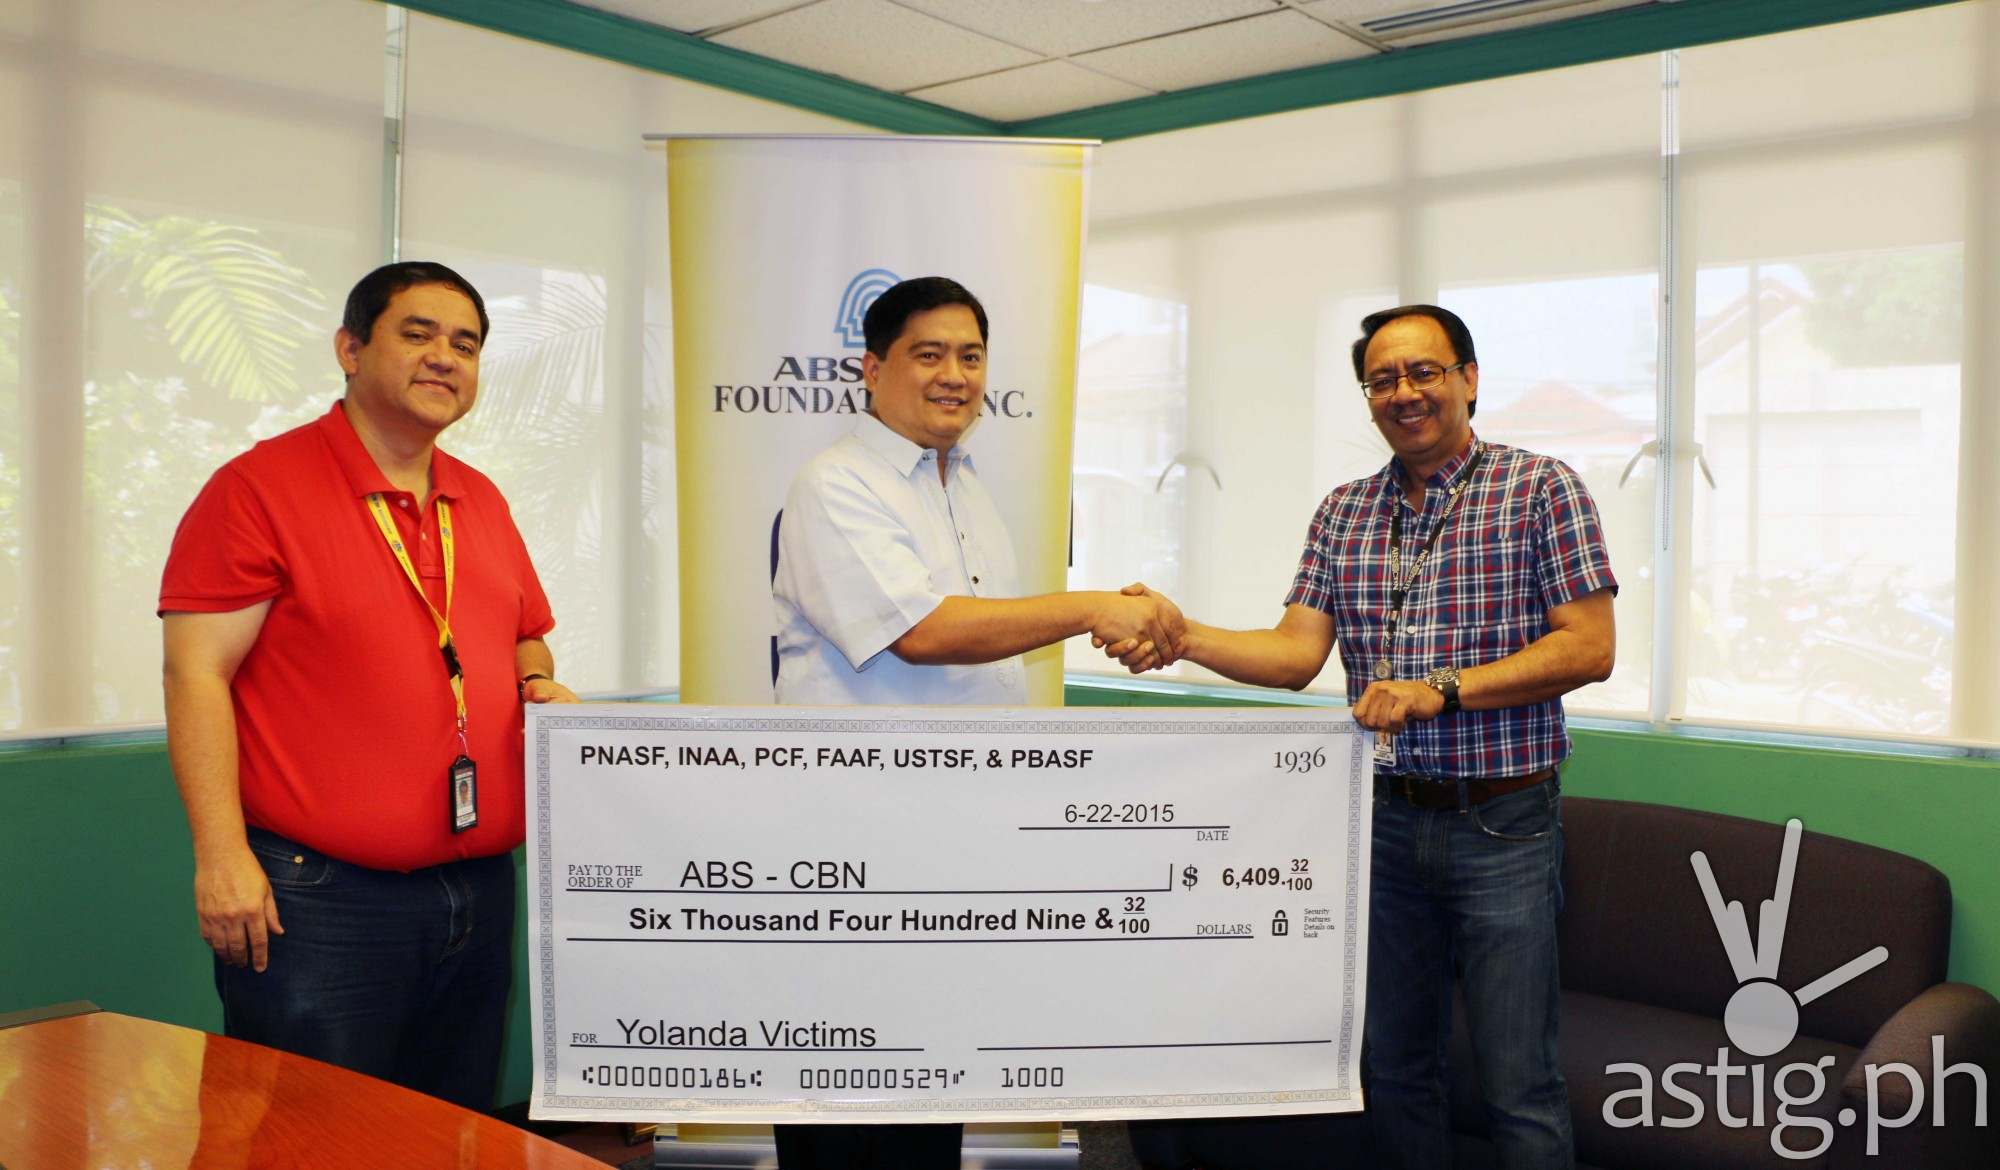 District 2, Pasay City Councilor Allan T. Panaligan shakes hands with Sagip Kapamilya Program Director Higino T. Dungo , Jr. with Jerry O. Bennett, head of ABS-CBN's Integrated Public Service